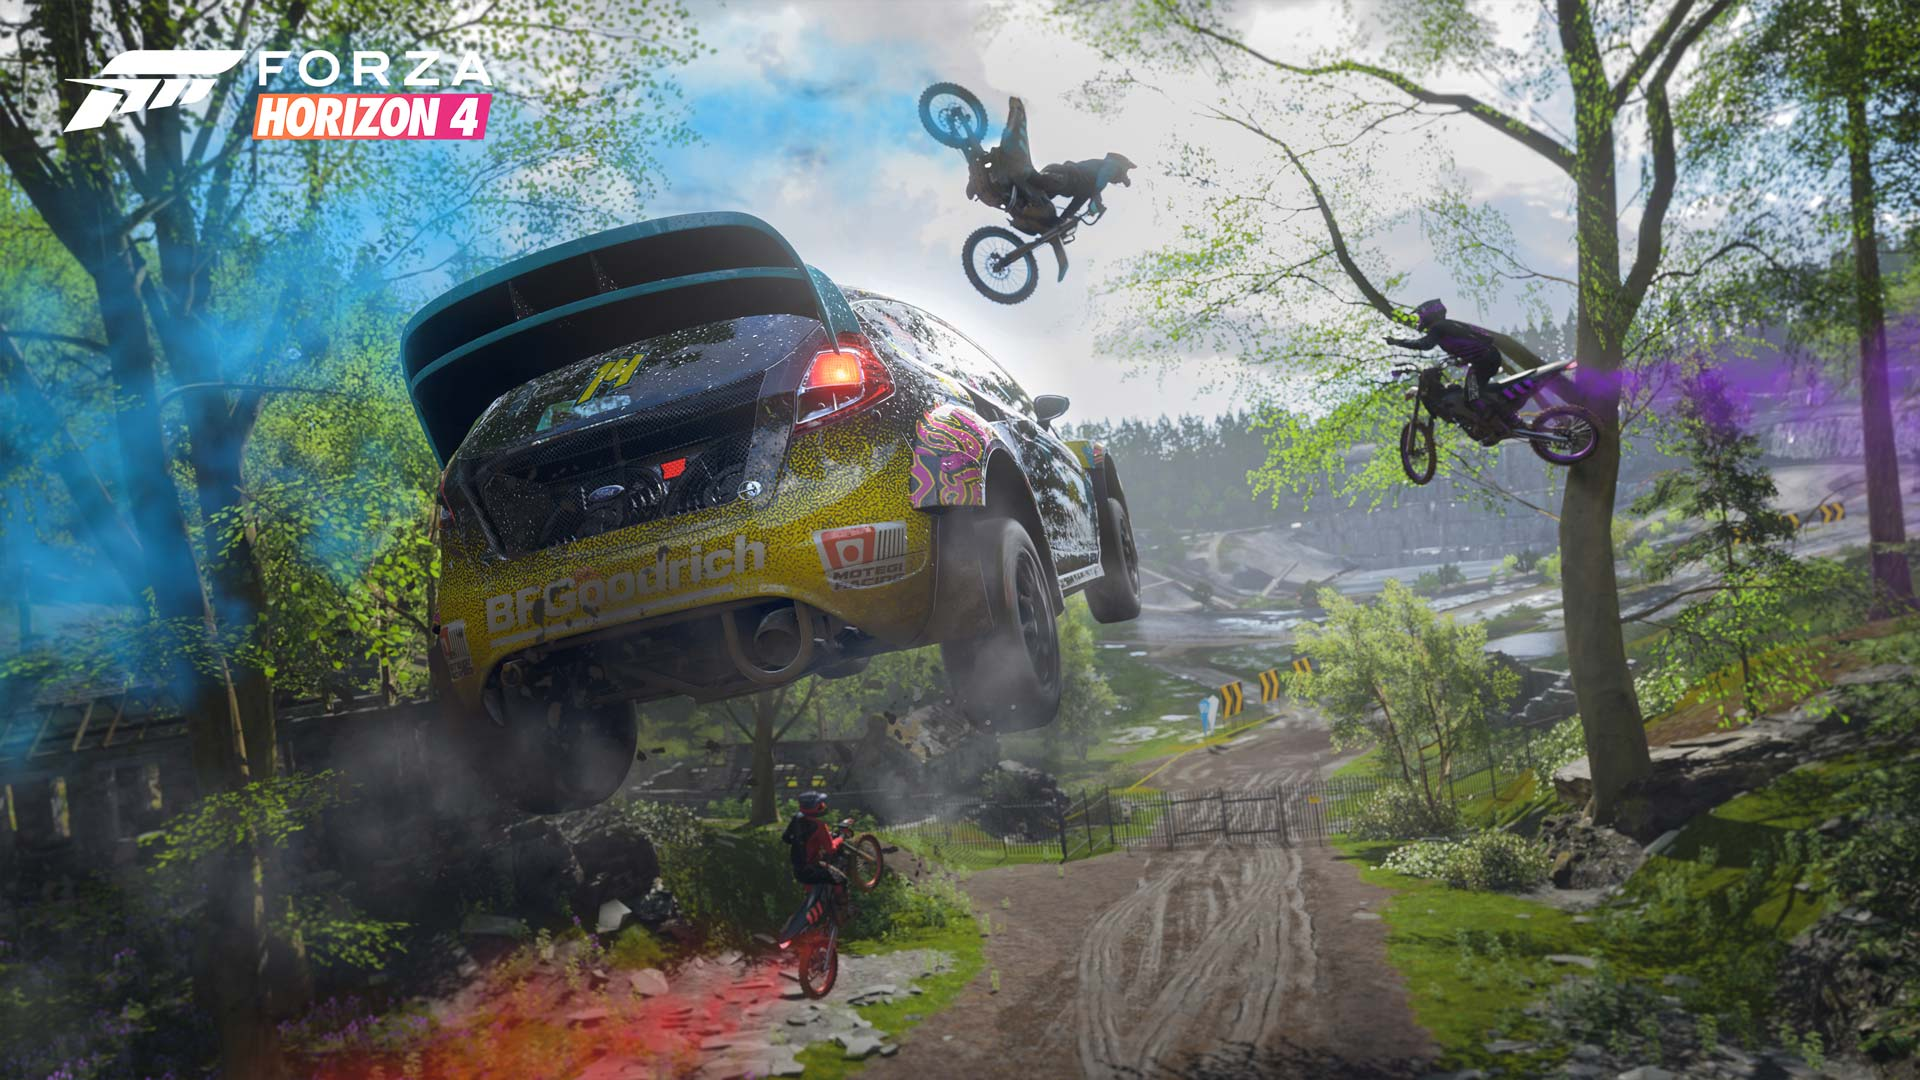 Forza Horizon 4: Laracer @ Horizon Event Games Screenshot